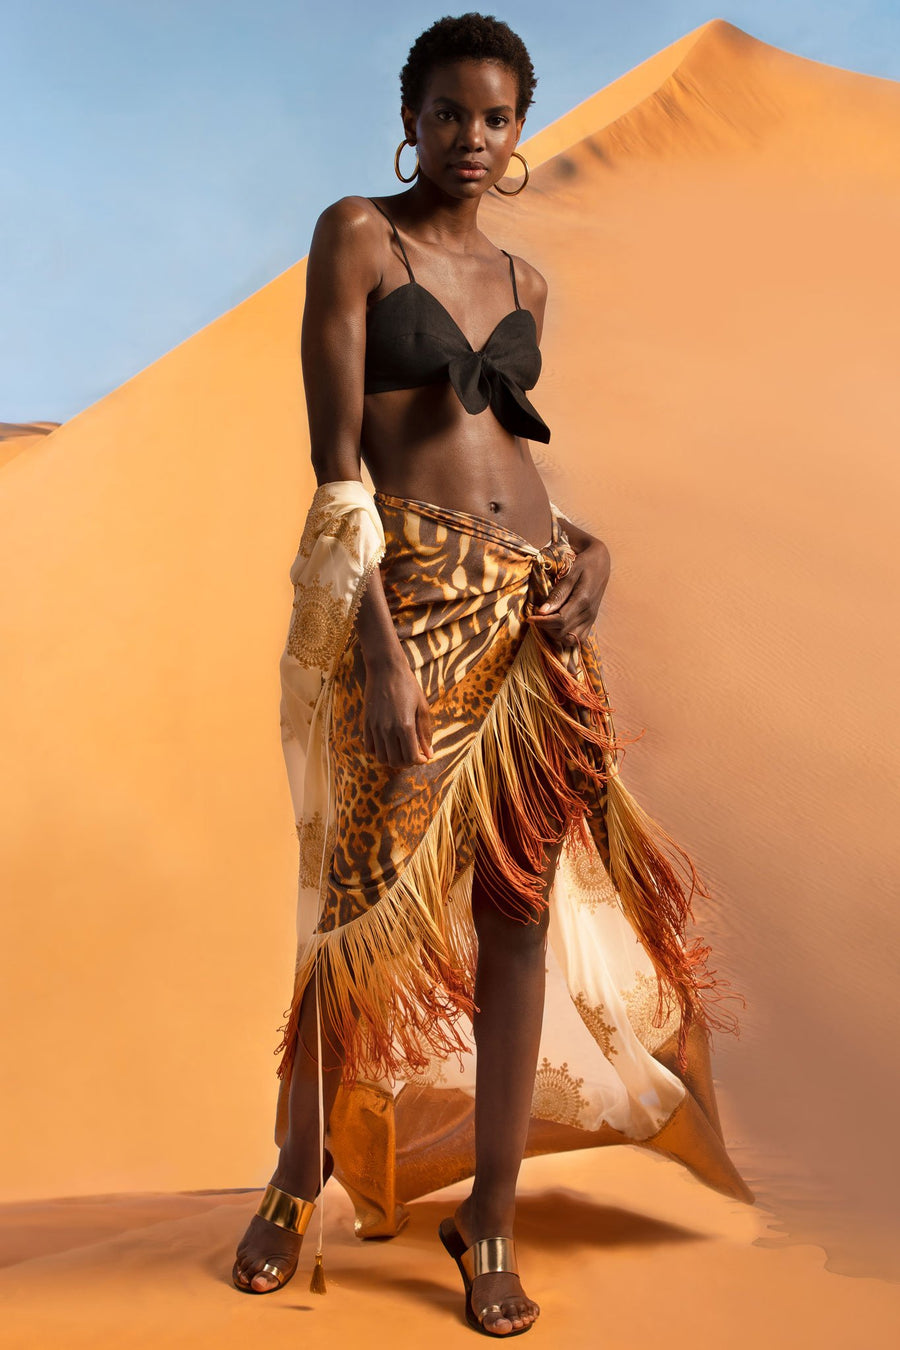 This is a photo of a woman wearing a black linen bralette with center tie, paired with a cheetah pareo with ombre fringe on the hemline. Falling around her arms, she wears a white coat with gold embellishments and a gold hemline. She stands in front of a desert sand dune.